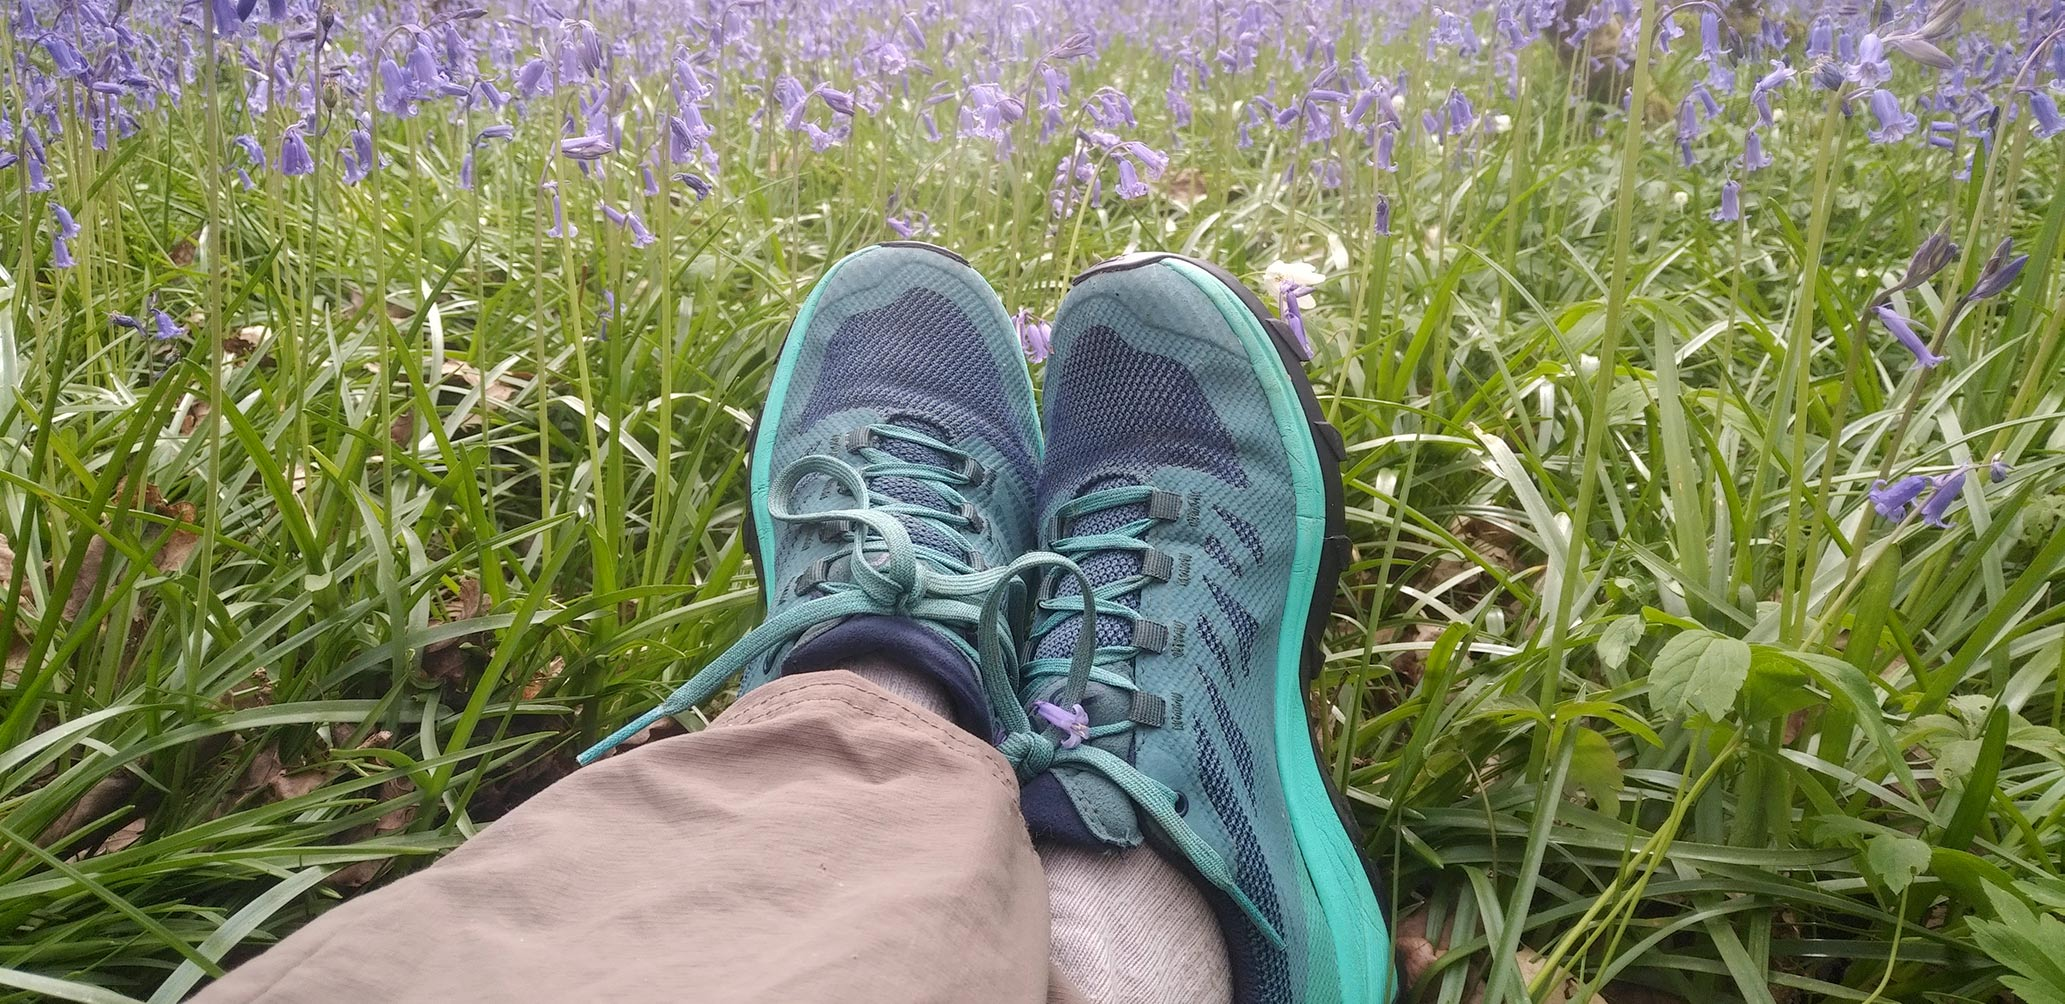 Salomon Outline Hiking shoes. Blue lace up trail running style shoe.